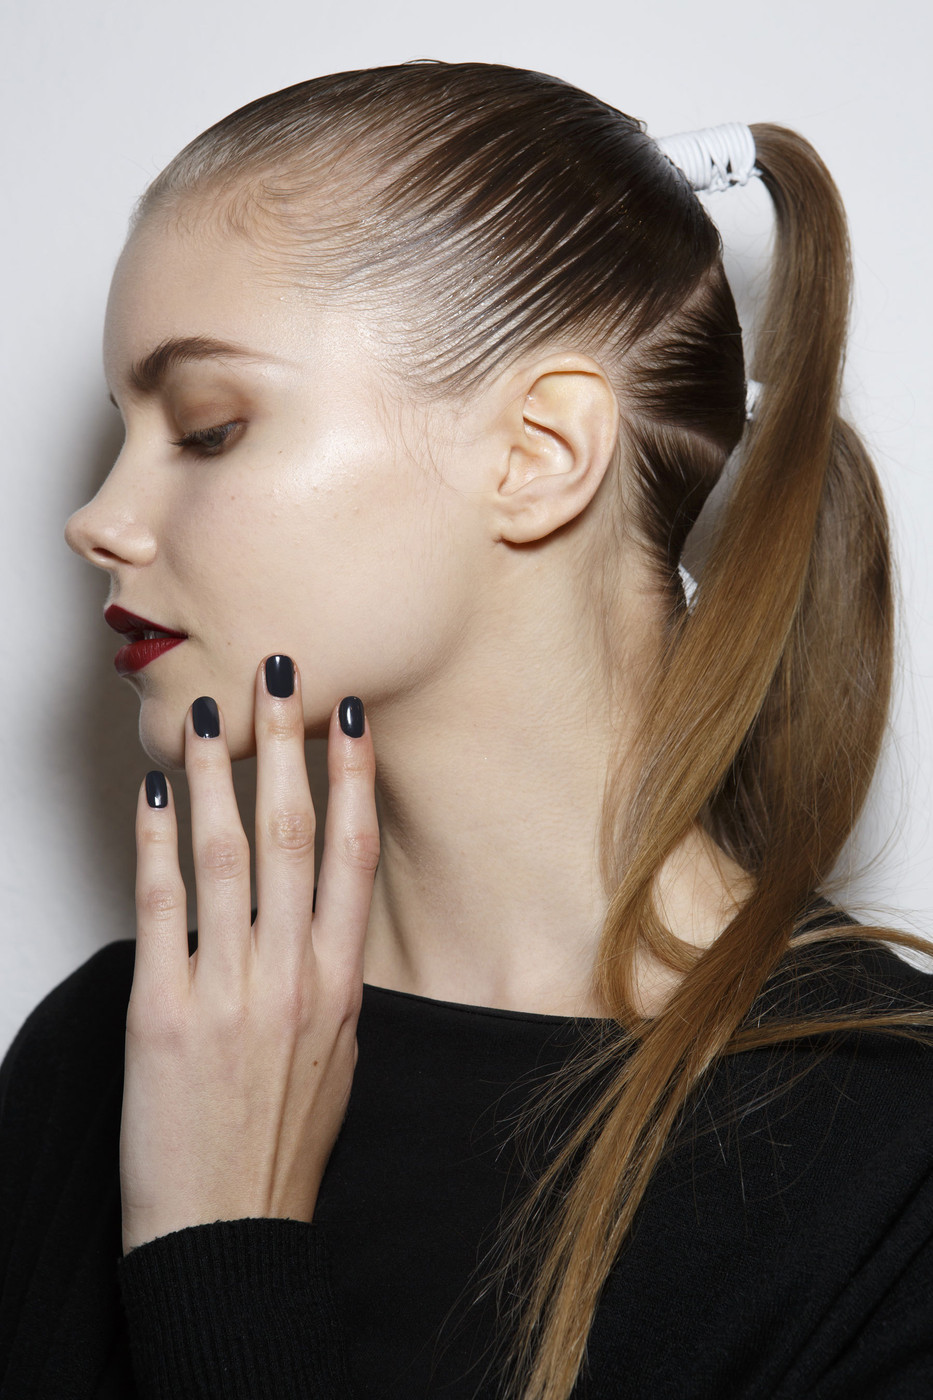 The 10 Most Wearable Nails from London and Milan Fashion Weeks